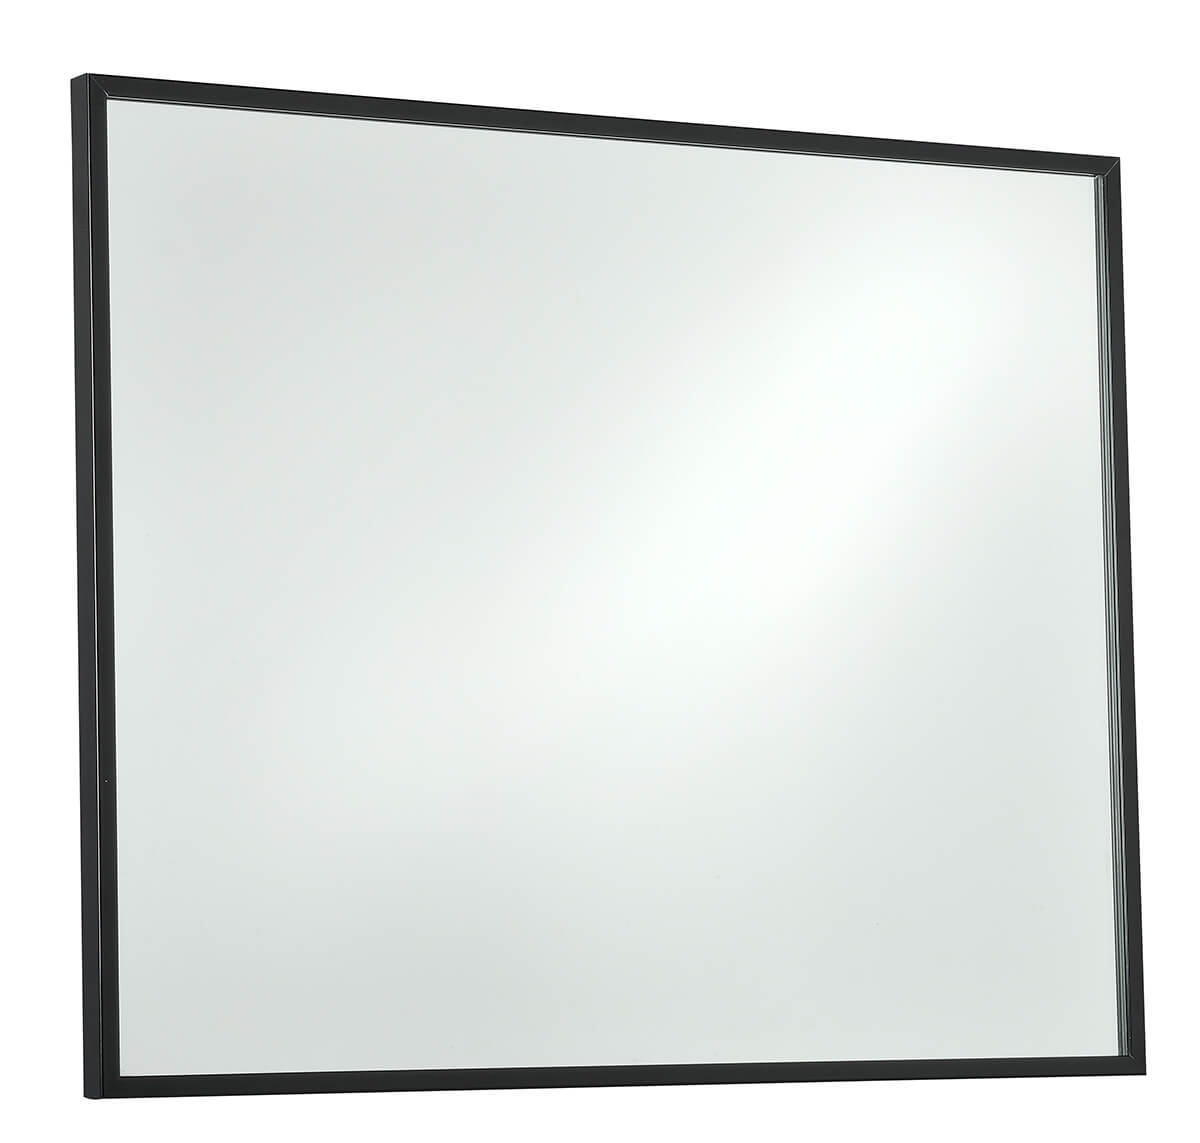 Concealed Mirror Frame with Leg